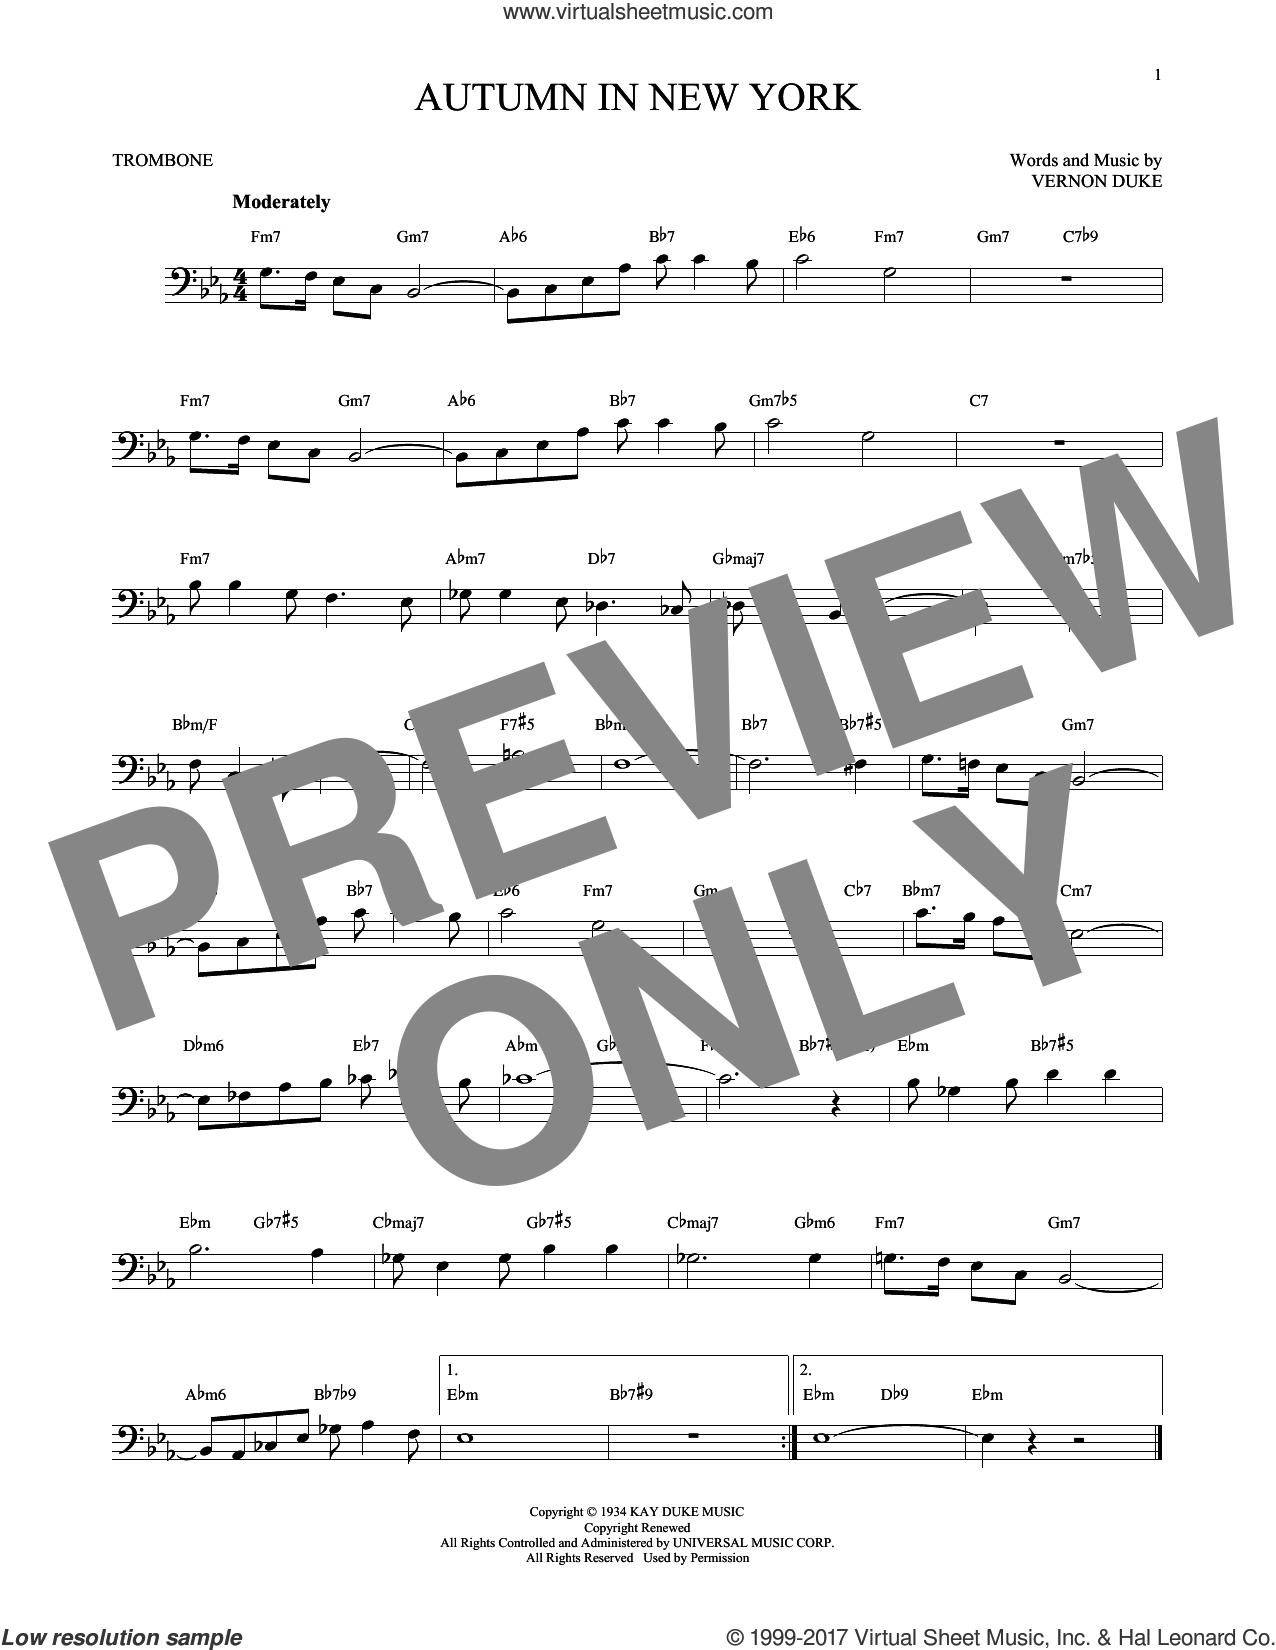 Autumn In New York sheet music for trombone solo by Vernon Duke, Bud Powell and Jo Stafford, intermediate skill level